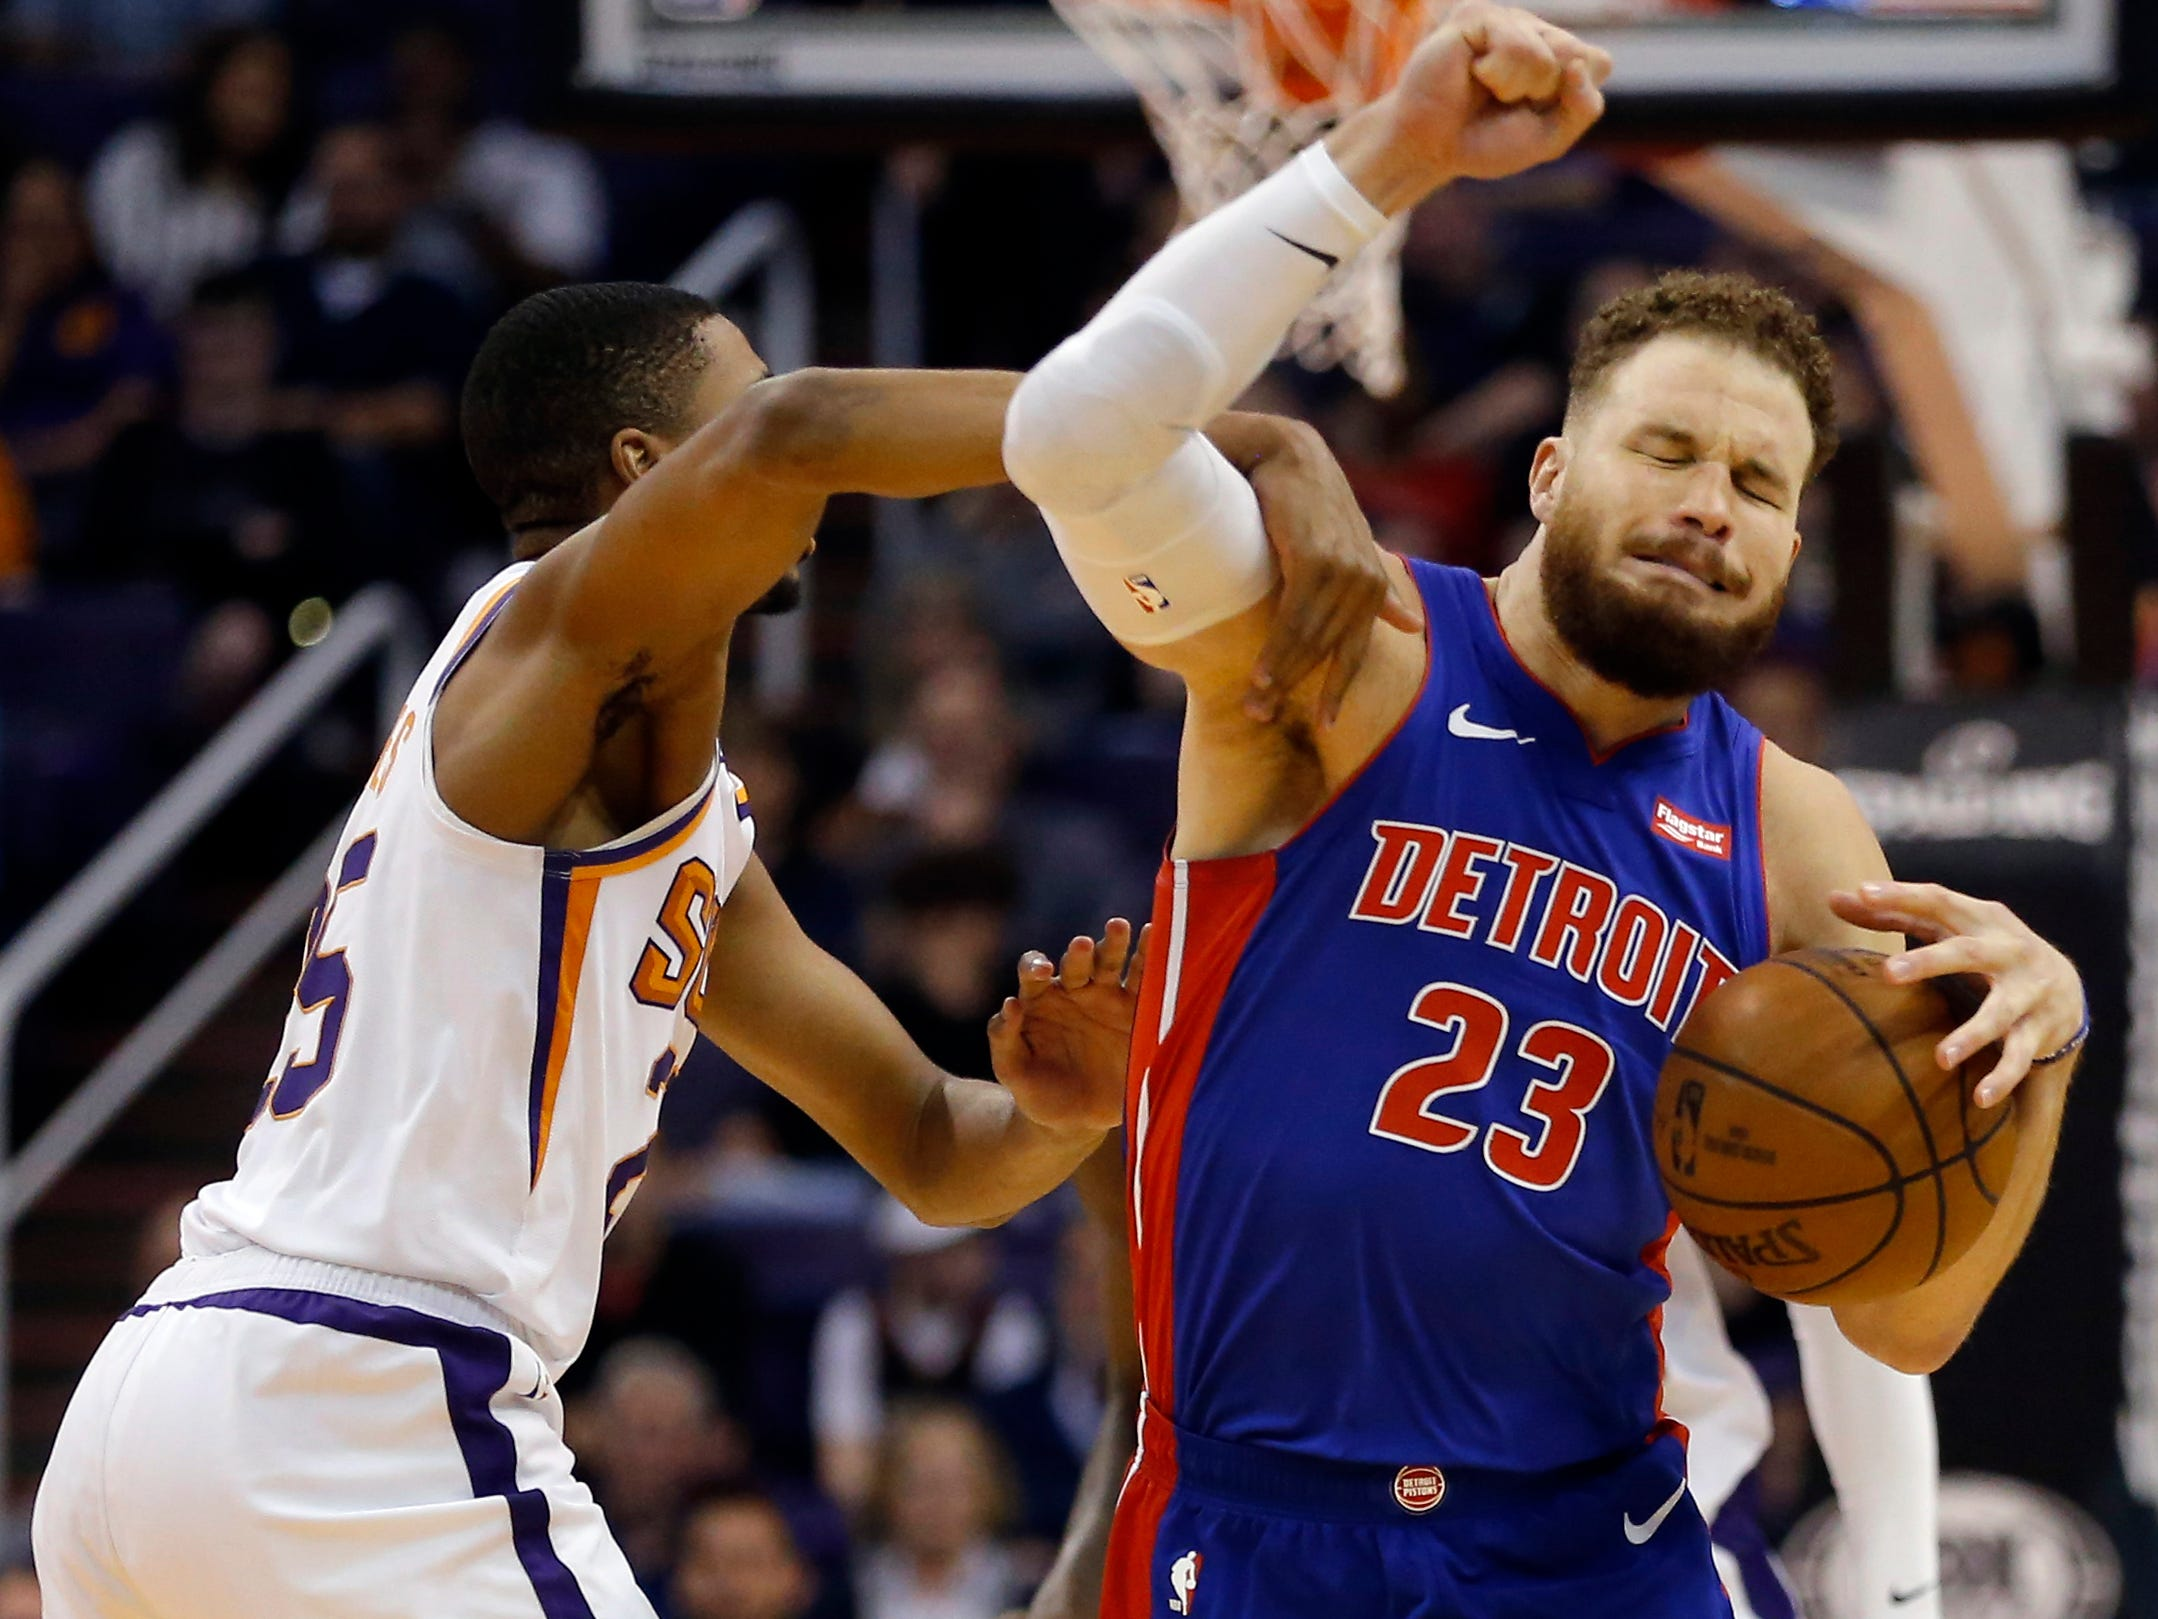 Mar 21, 2019; Phoenix, AZ, USA; Detroit Pistons forward Blake Griffin (23) gets fouled by Phoenix Suns forward Mikal Bridges (25) in the second half during an NBA basketball game at Talking Stick Resort Arena.